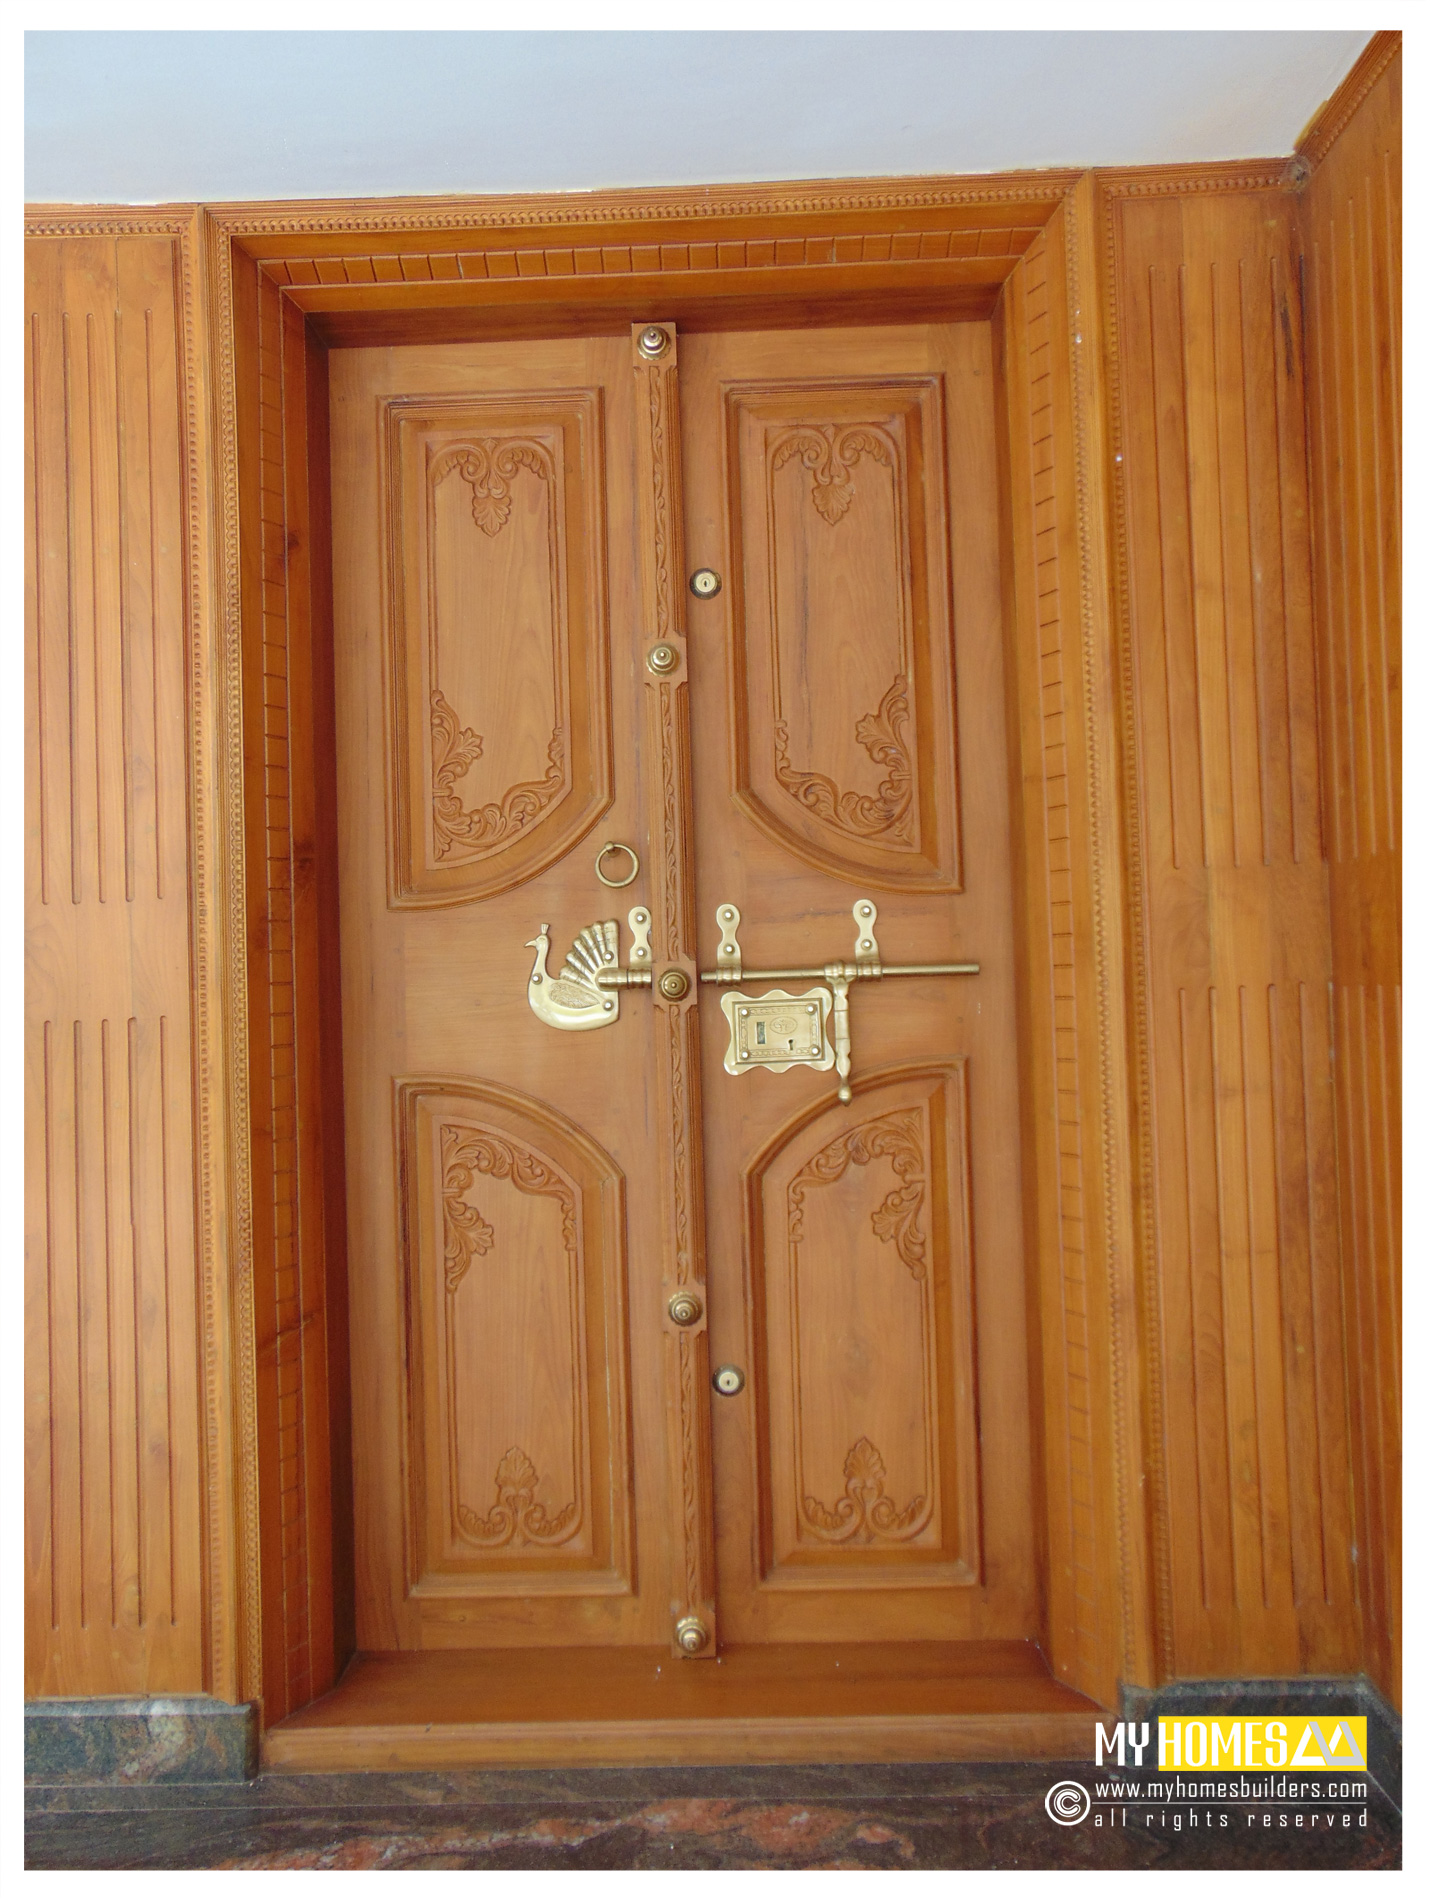 Main door design comtemporory kerala joy studio design Best door designs